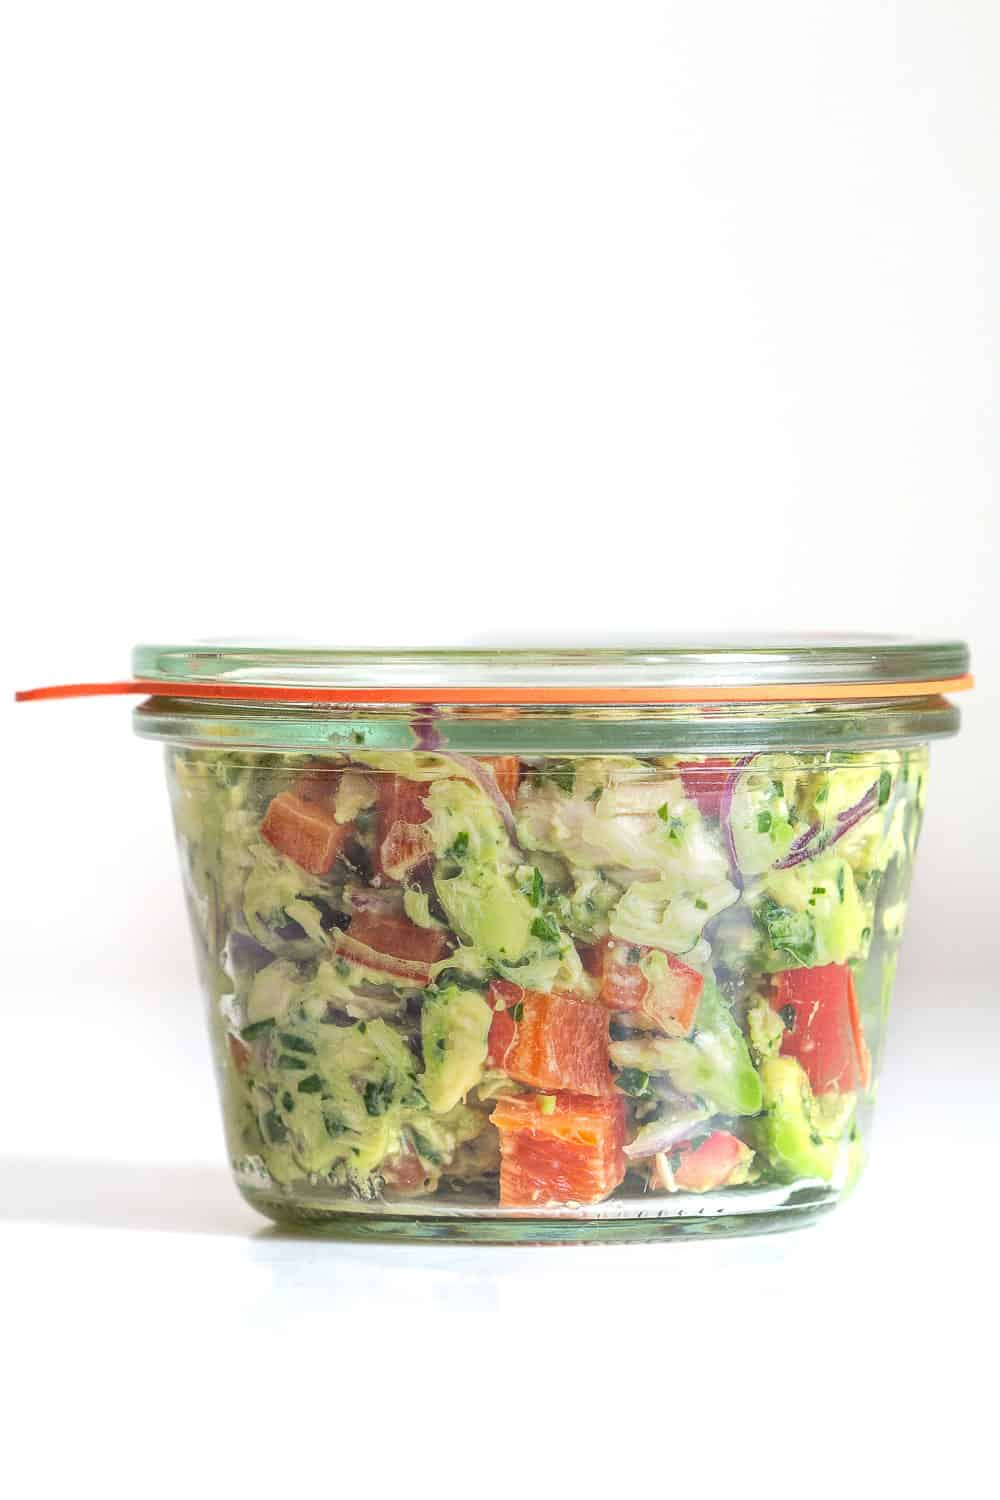 Avocado Tuna Salad in sealed glass jar for meal prep